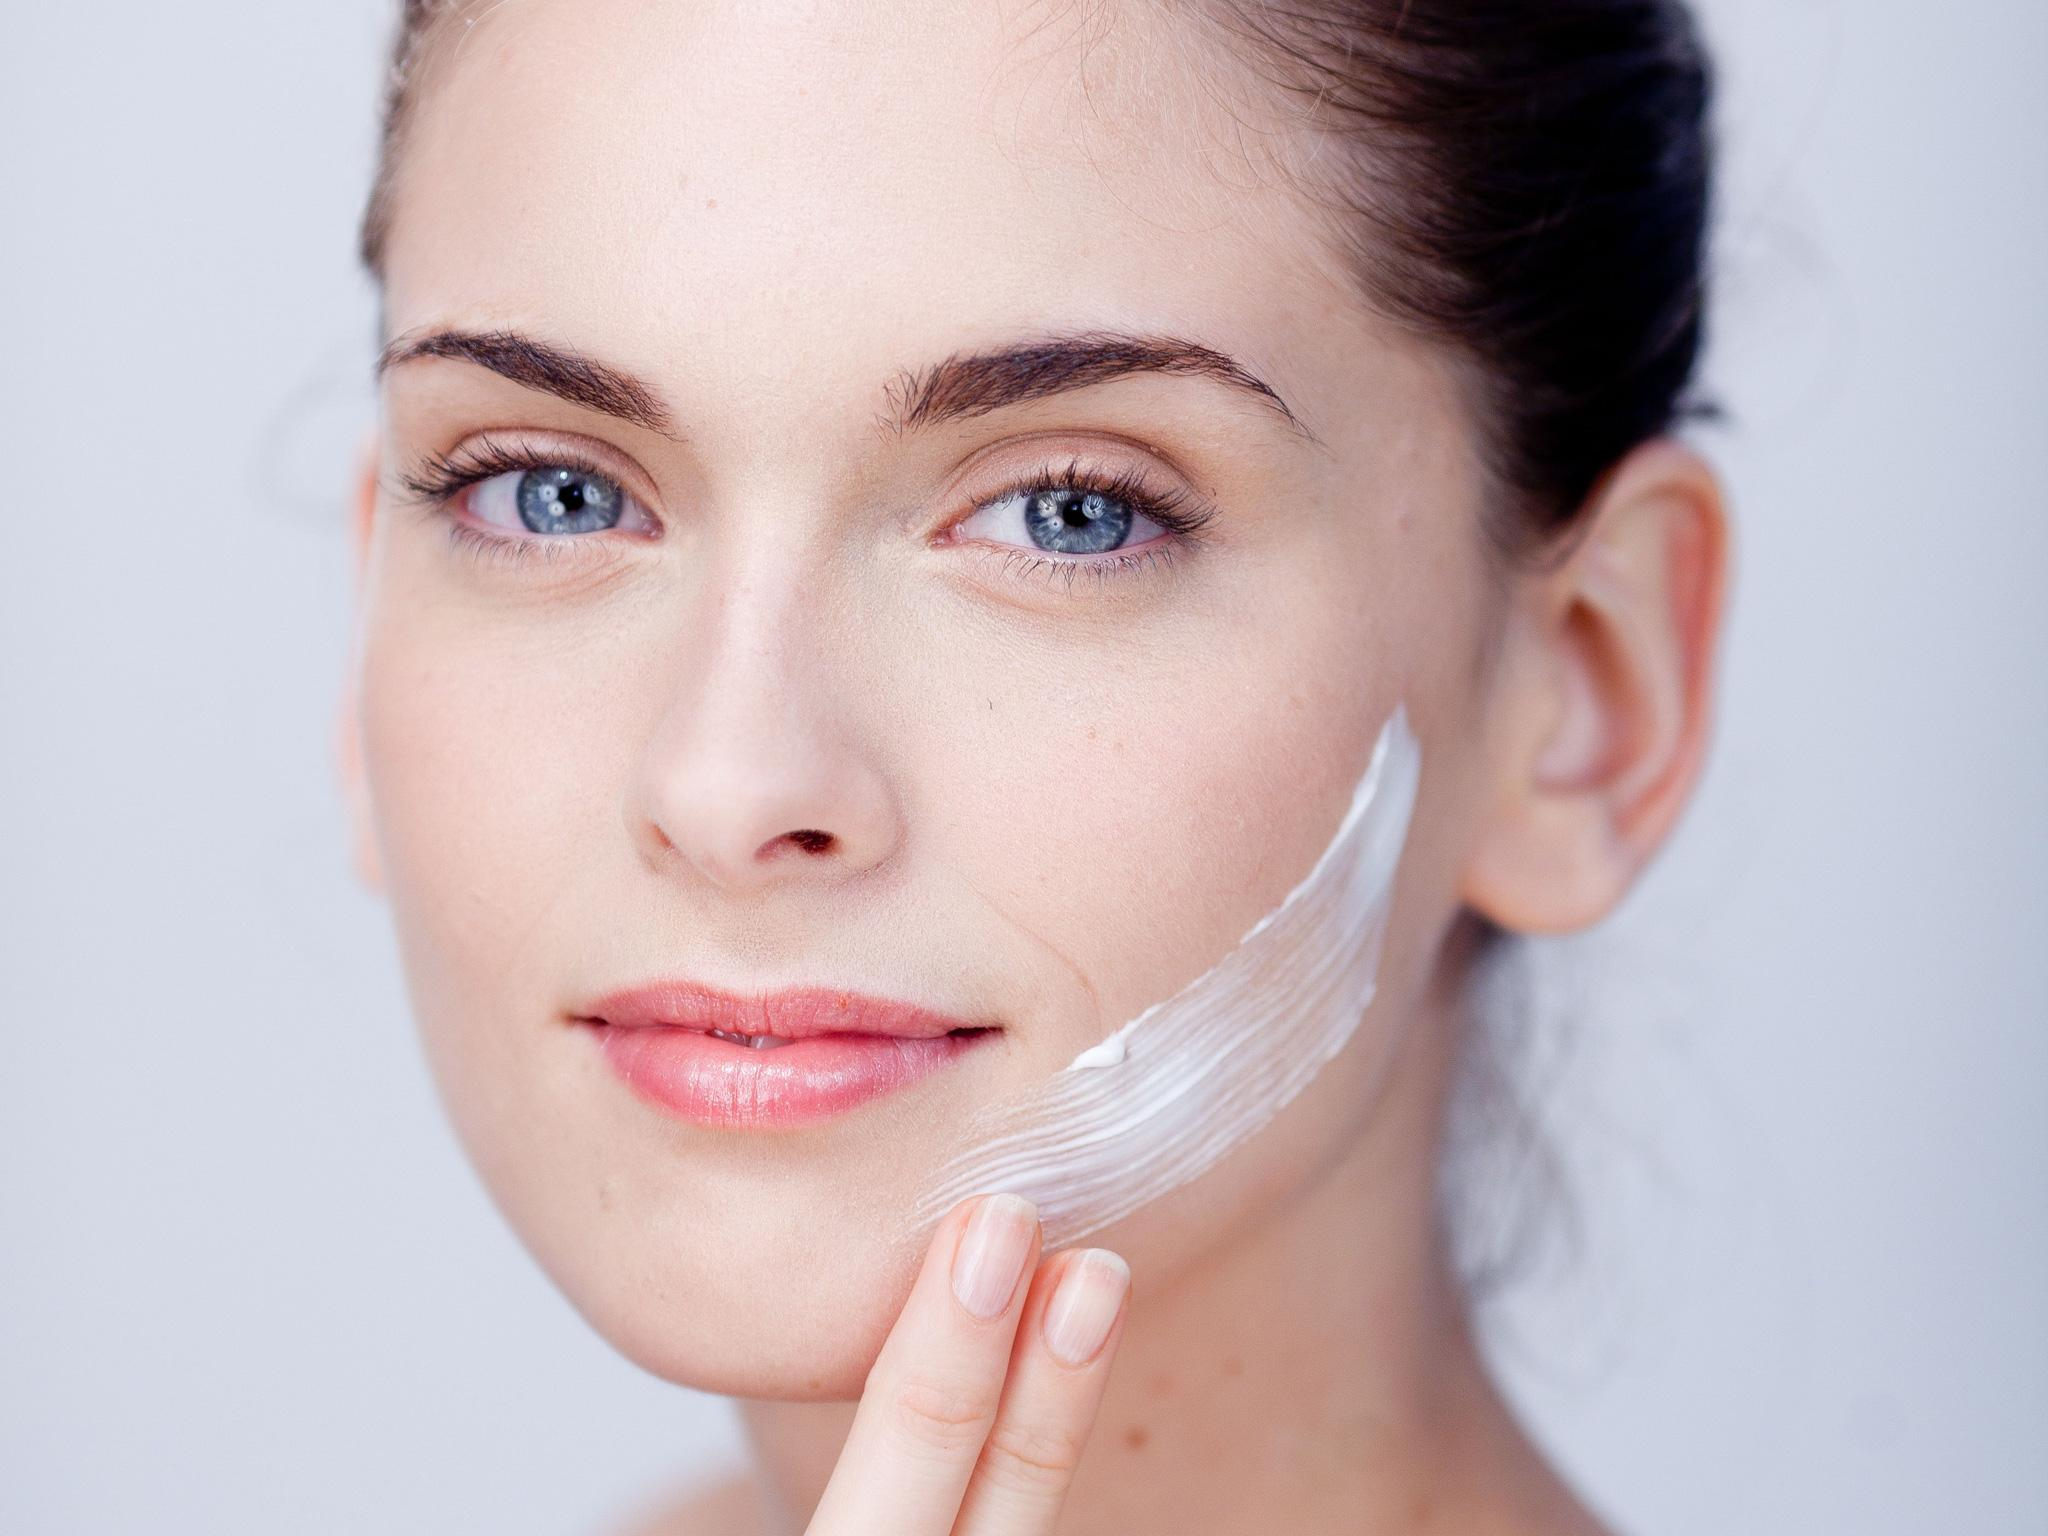 8 best face creams for sensitive skin